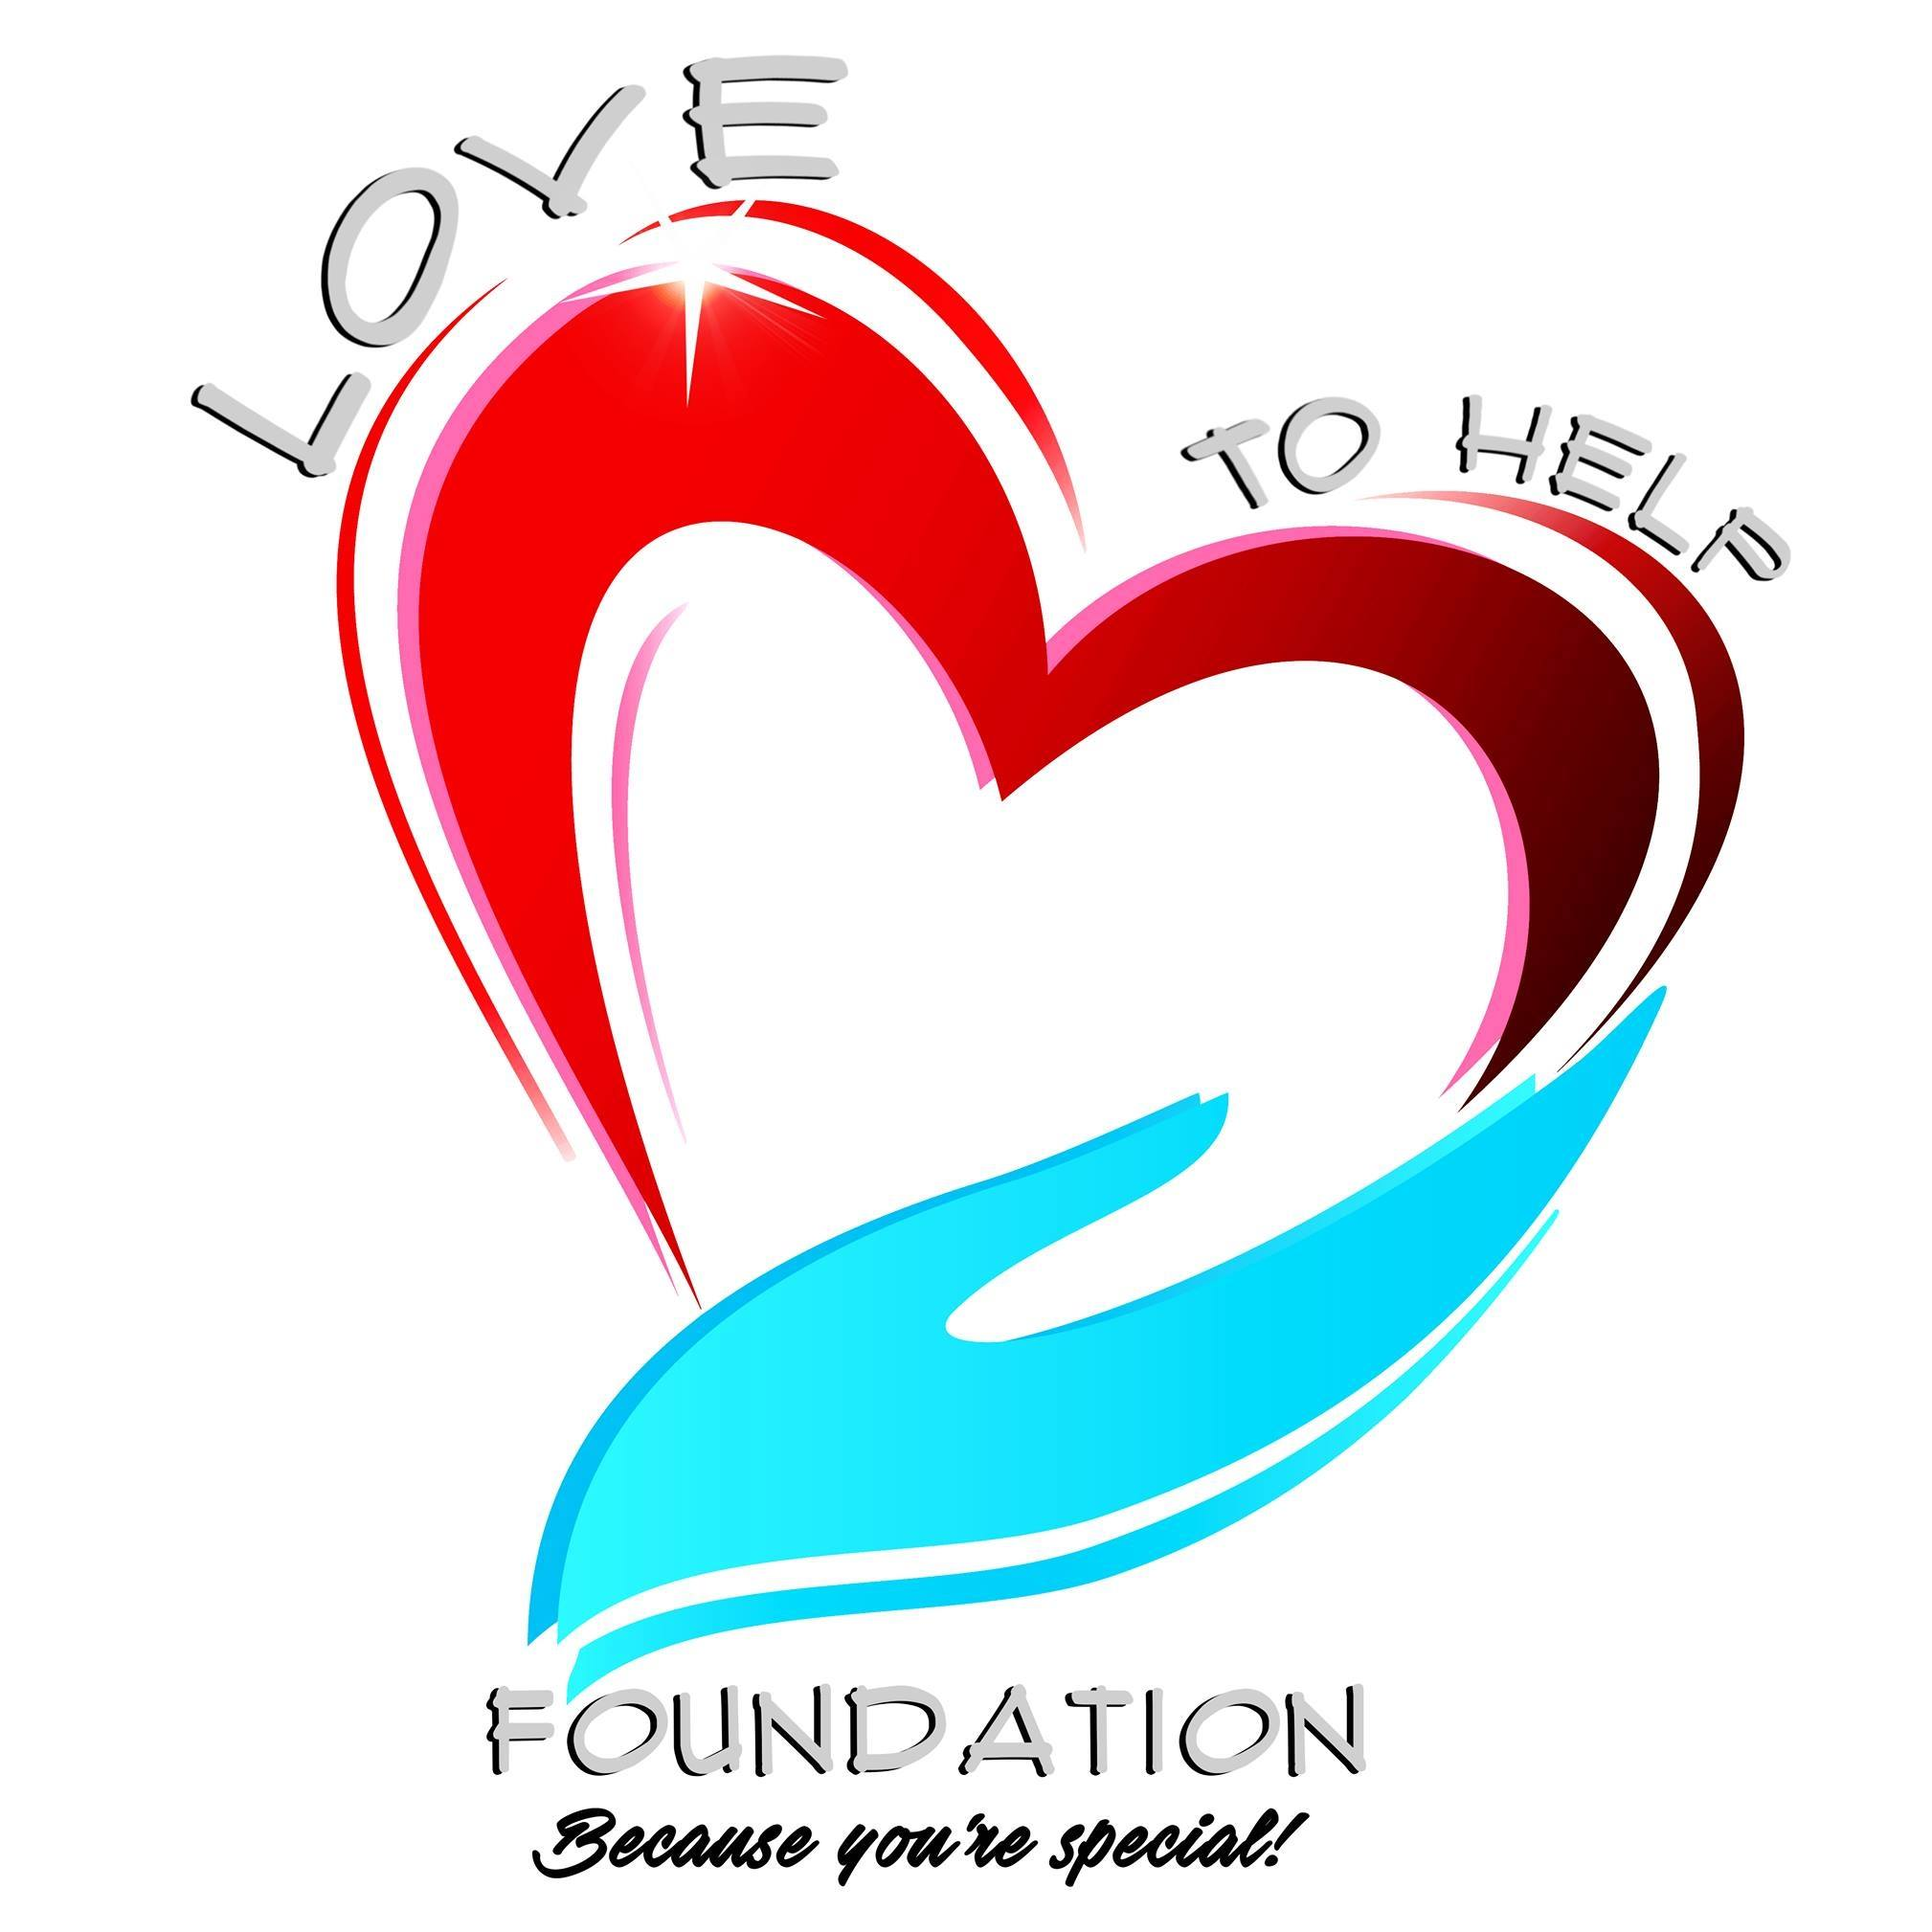 Love To Help Foundation